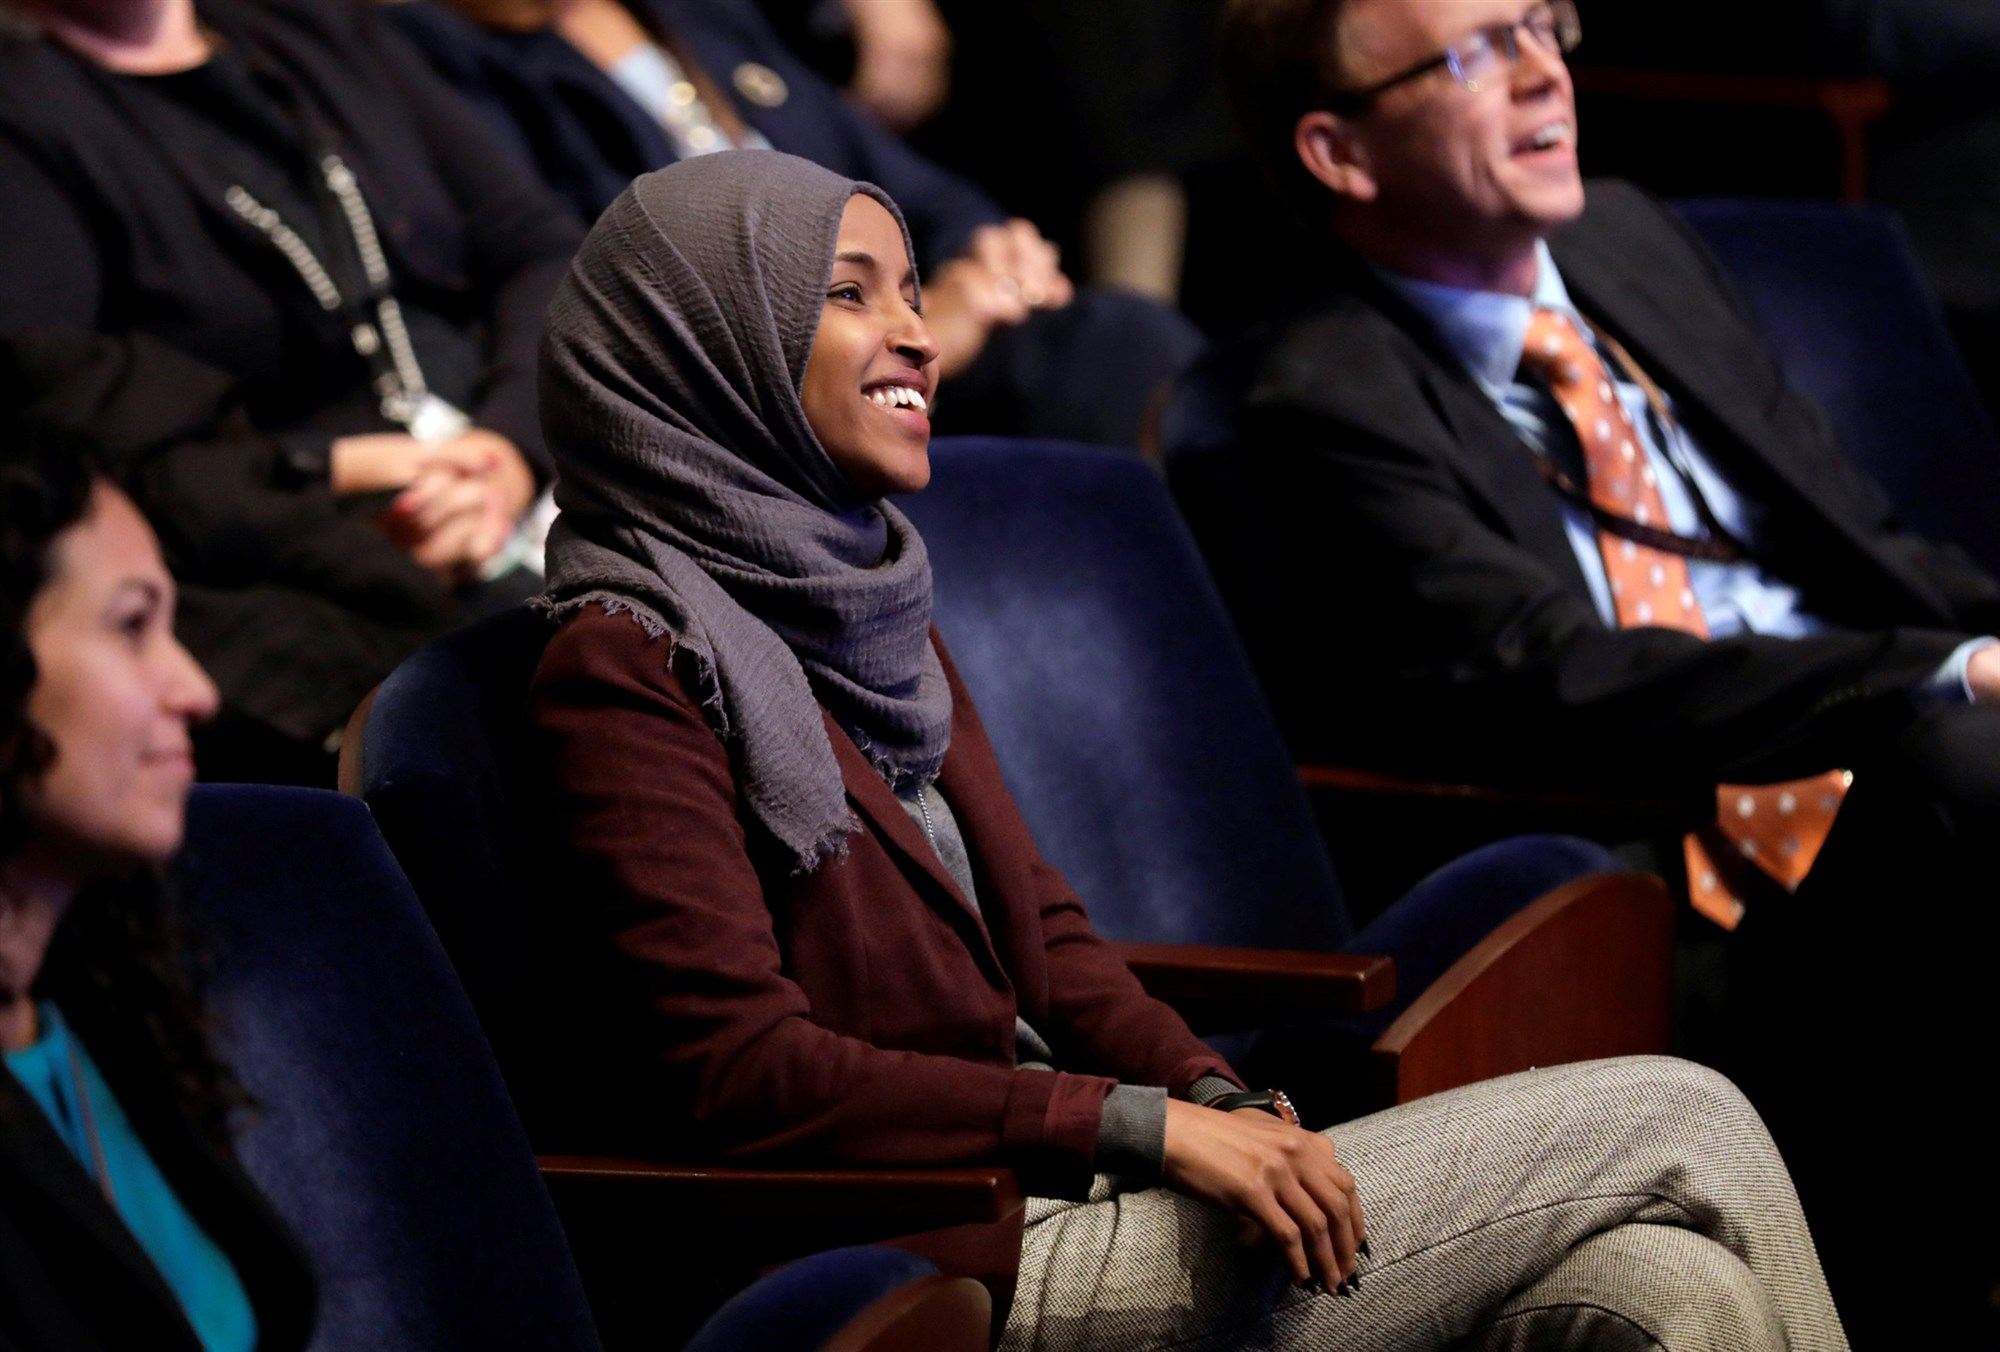 democrats seek rule change to formally allow hijabs